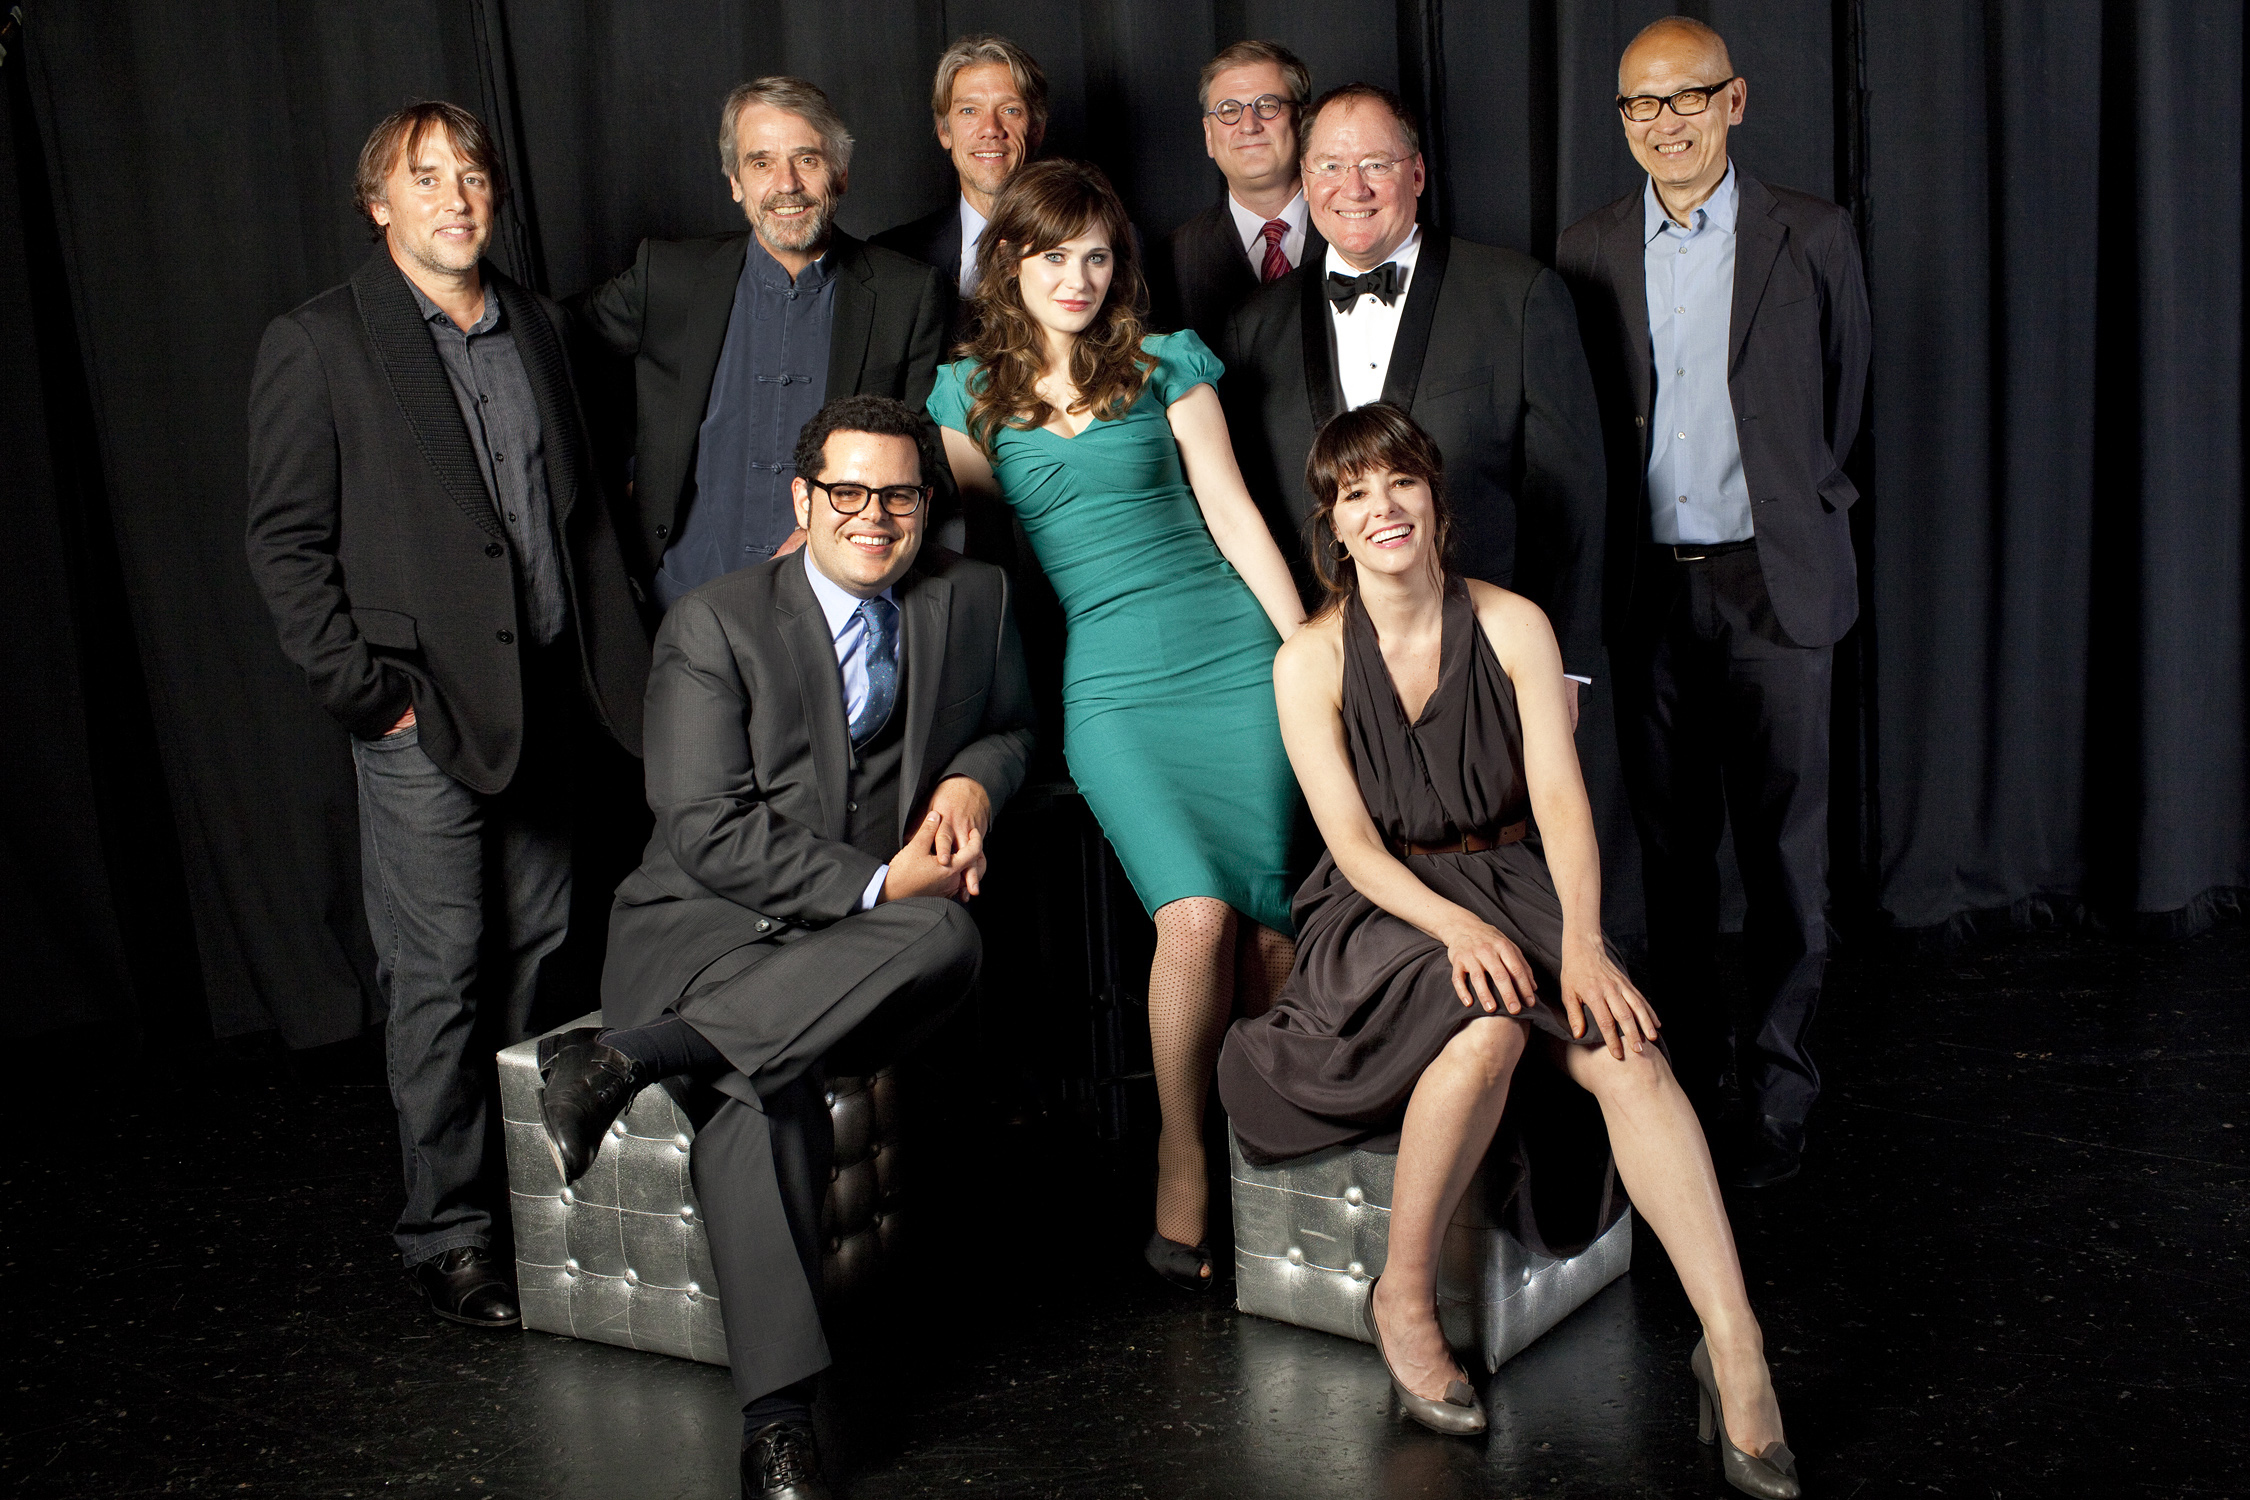 Richard Linklater, Jeremy Irons, Josh Gad, Stephen Gaghan, Zooey Deschanel, Noah Cowan, John Lasseter, Parker Posey and Wayne Wang, the honorees and presenters at Film Society Awards Night at the 57th San Francisco International Film Festival, May 1.  Photo: Pamela Gentile